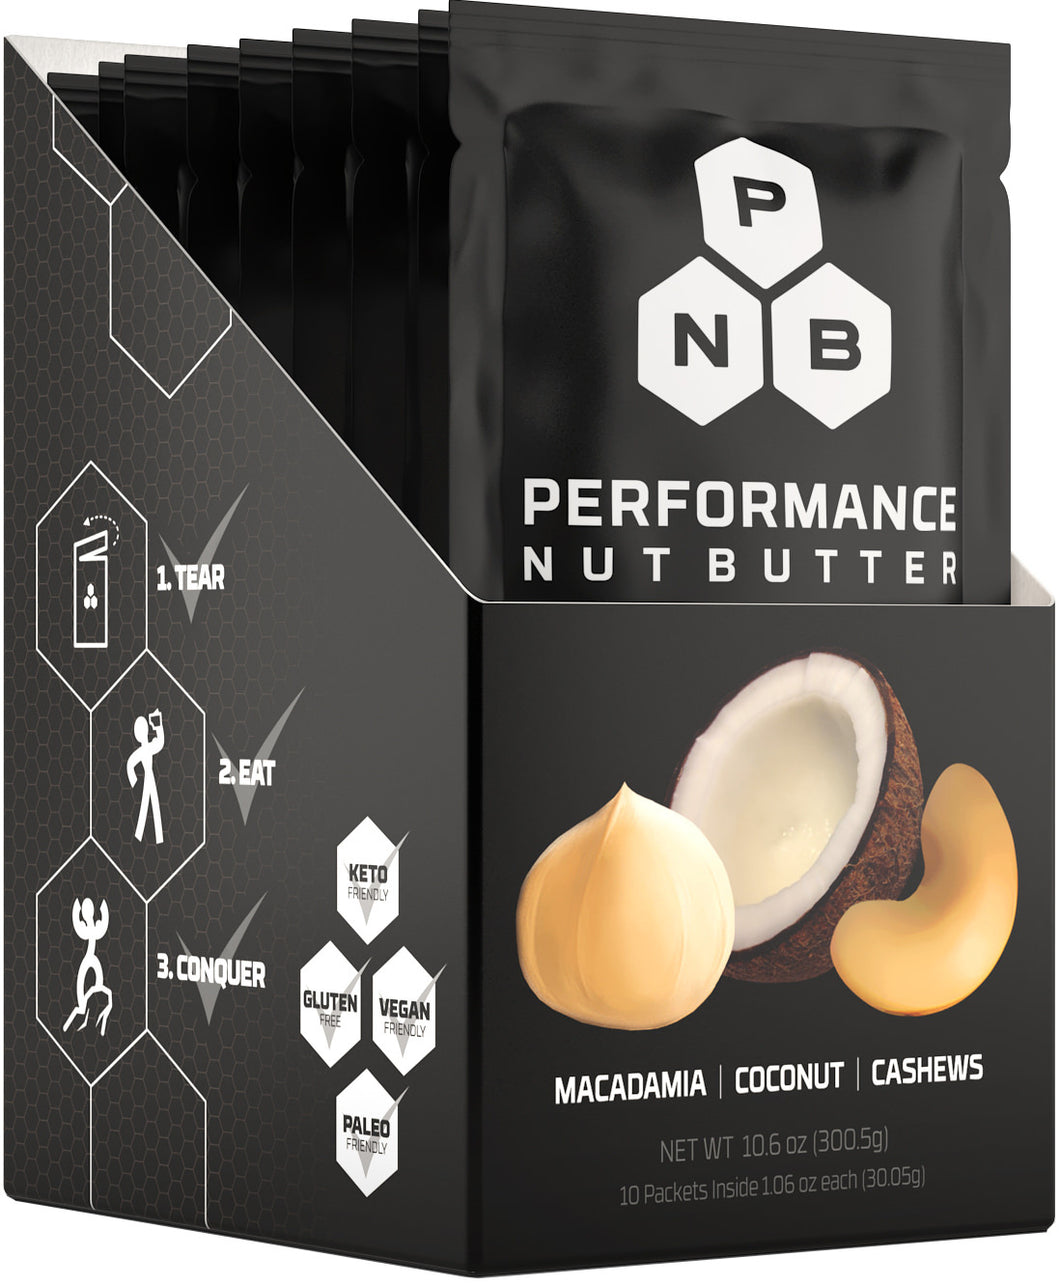 Performance Nut Butter